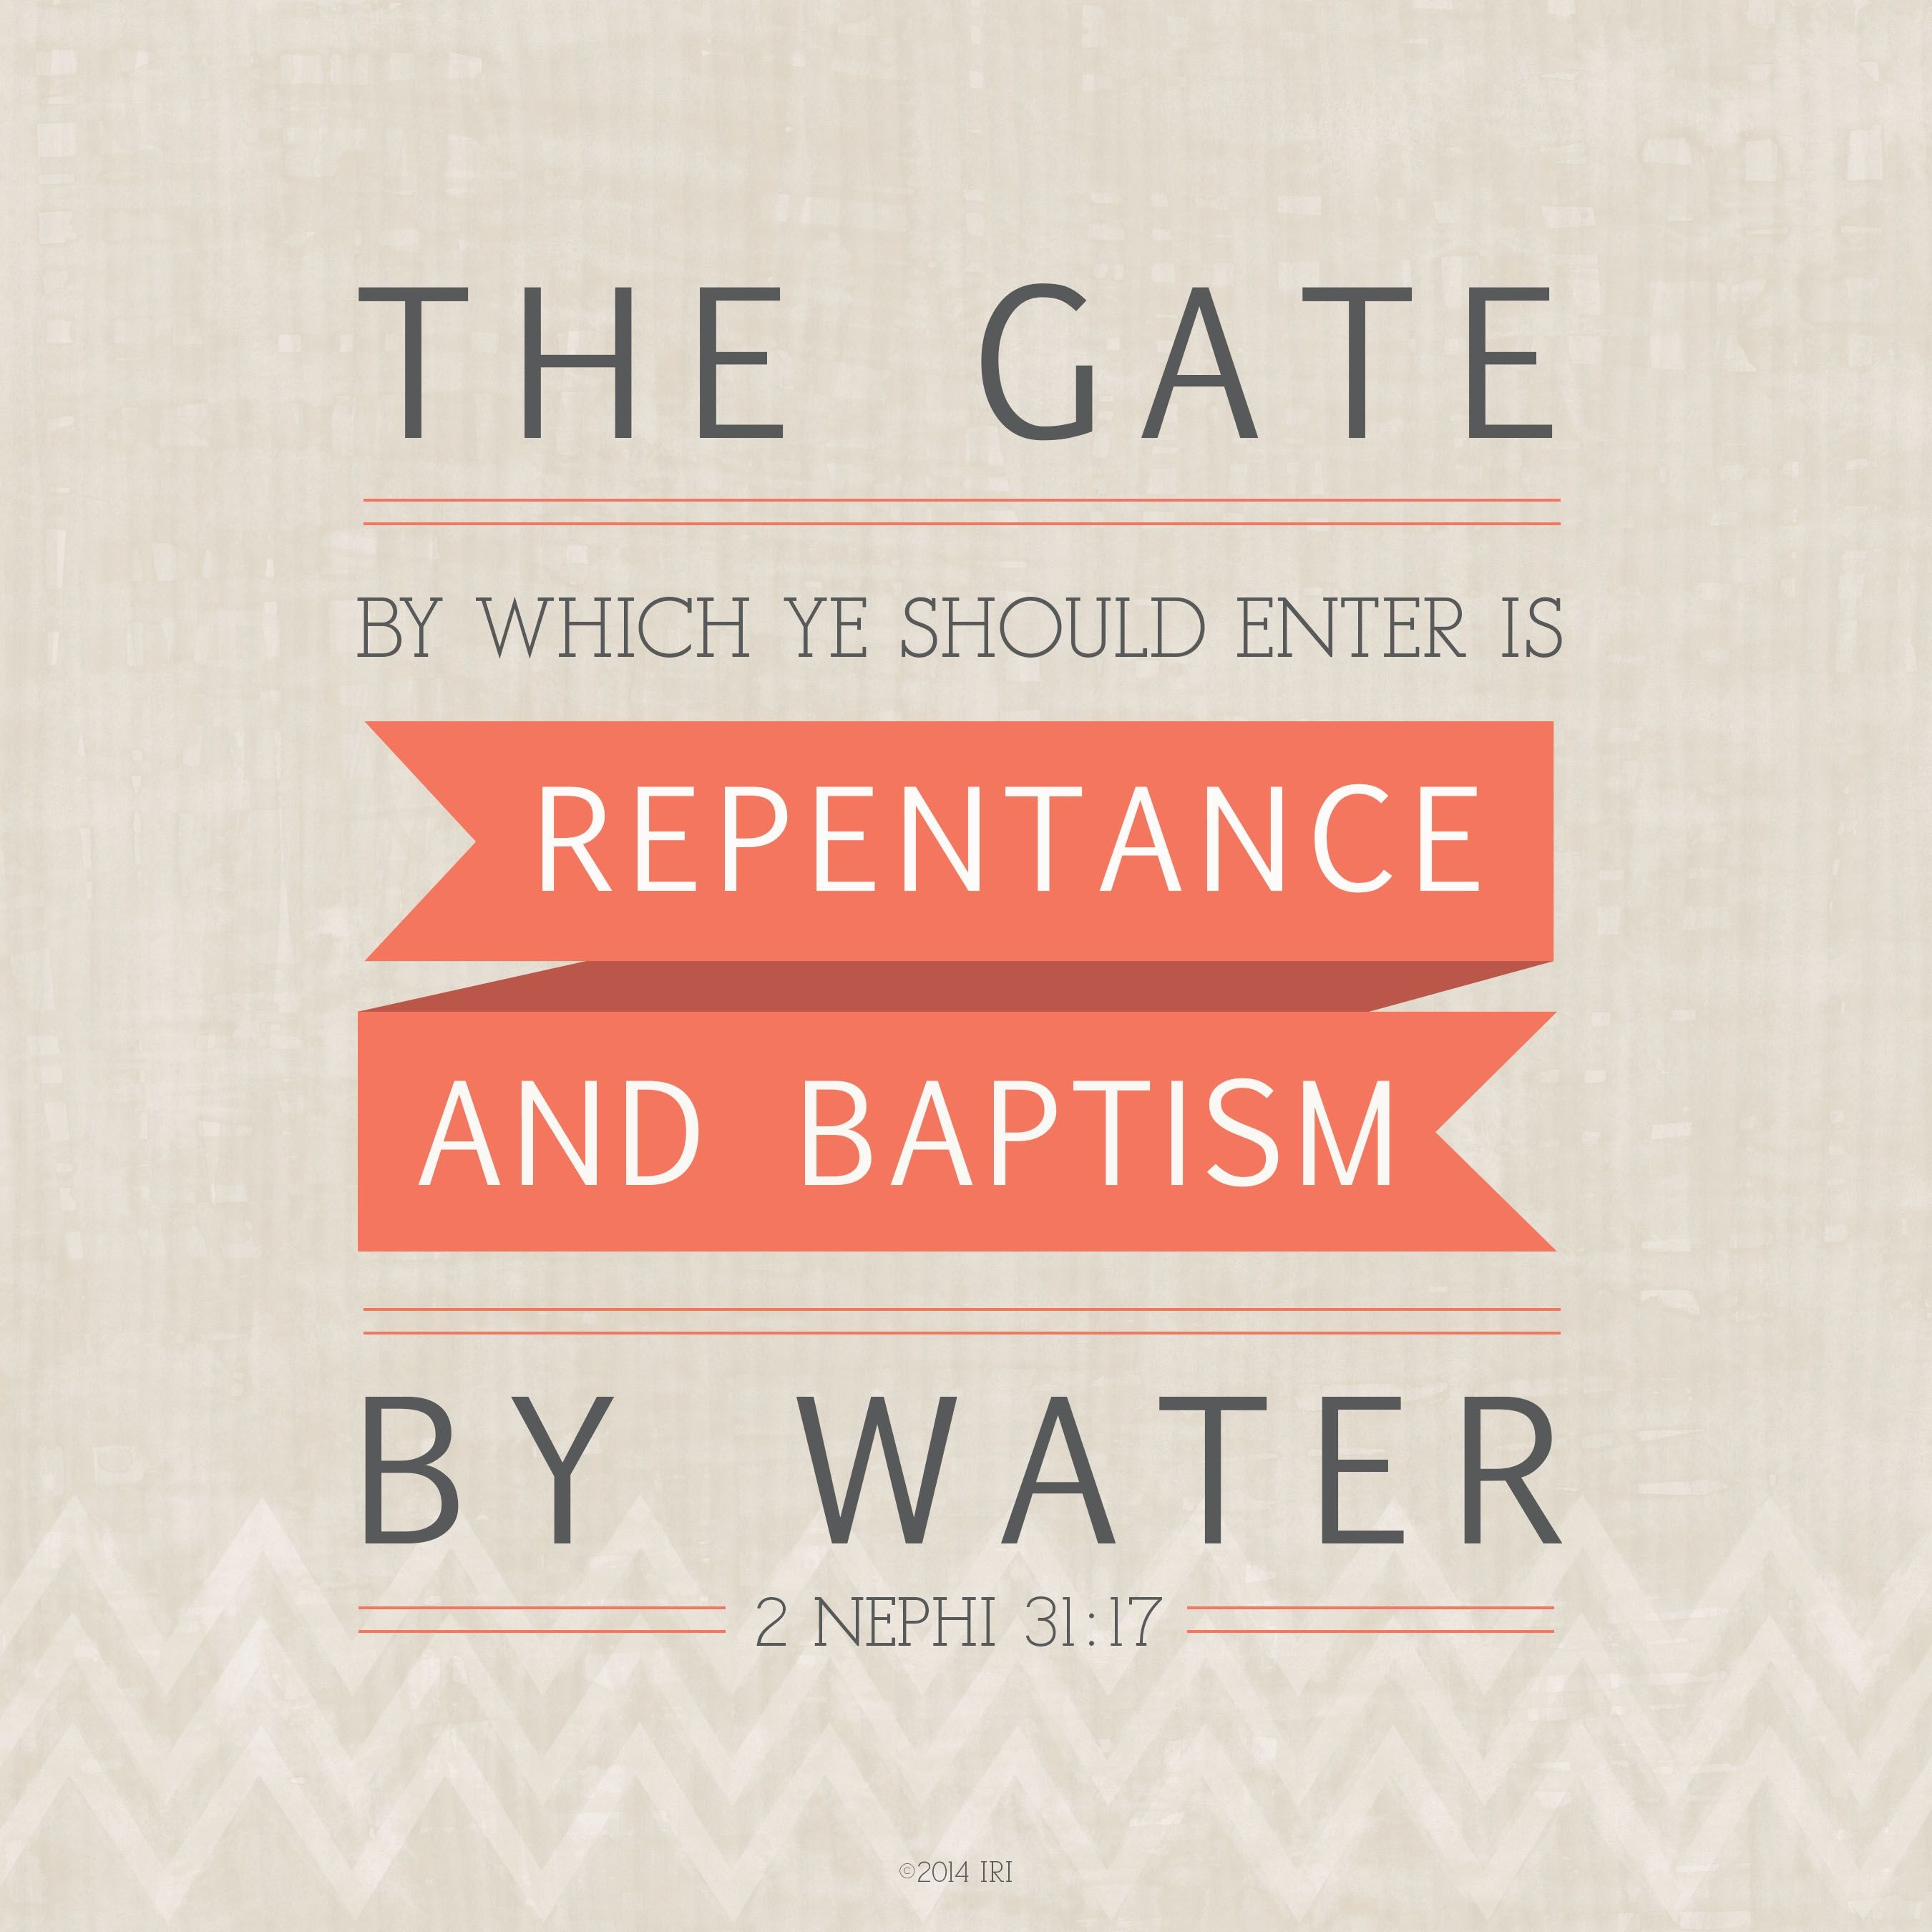 """""""The gate by which ye should enter is repentance and baptism by water.""""—2 Nephi 31:17."""